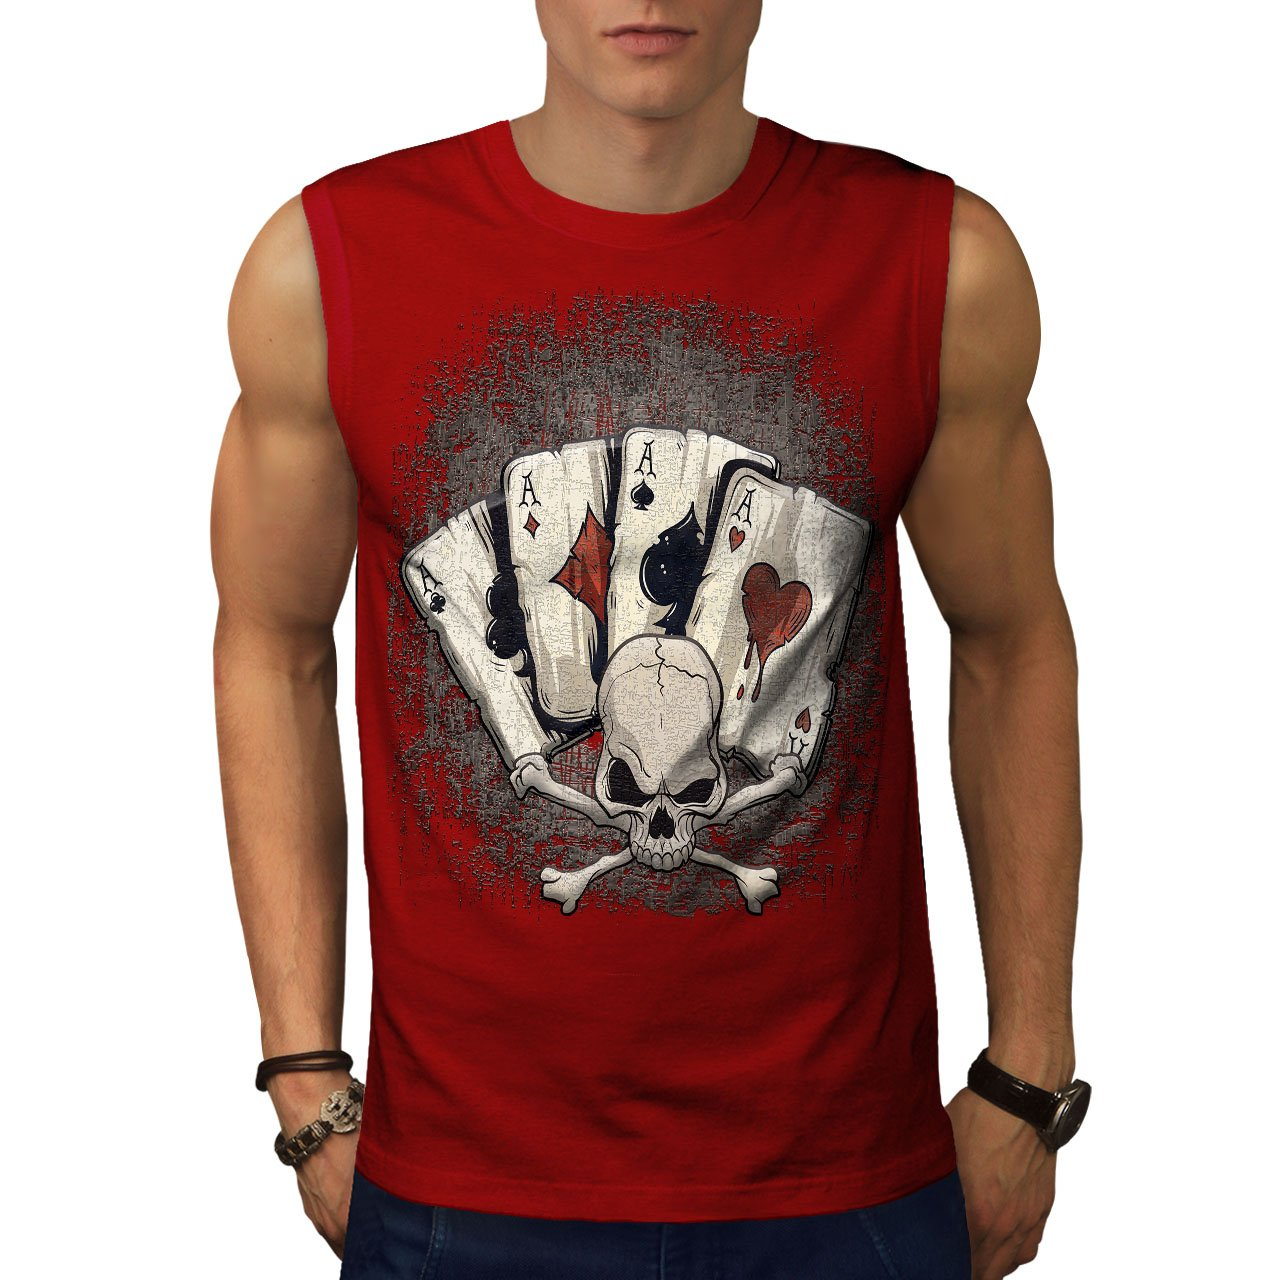 Wellcoda Poker Card Casino Skull Mens Sleevless T-shirt, Skull Active Top Shirt